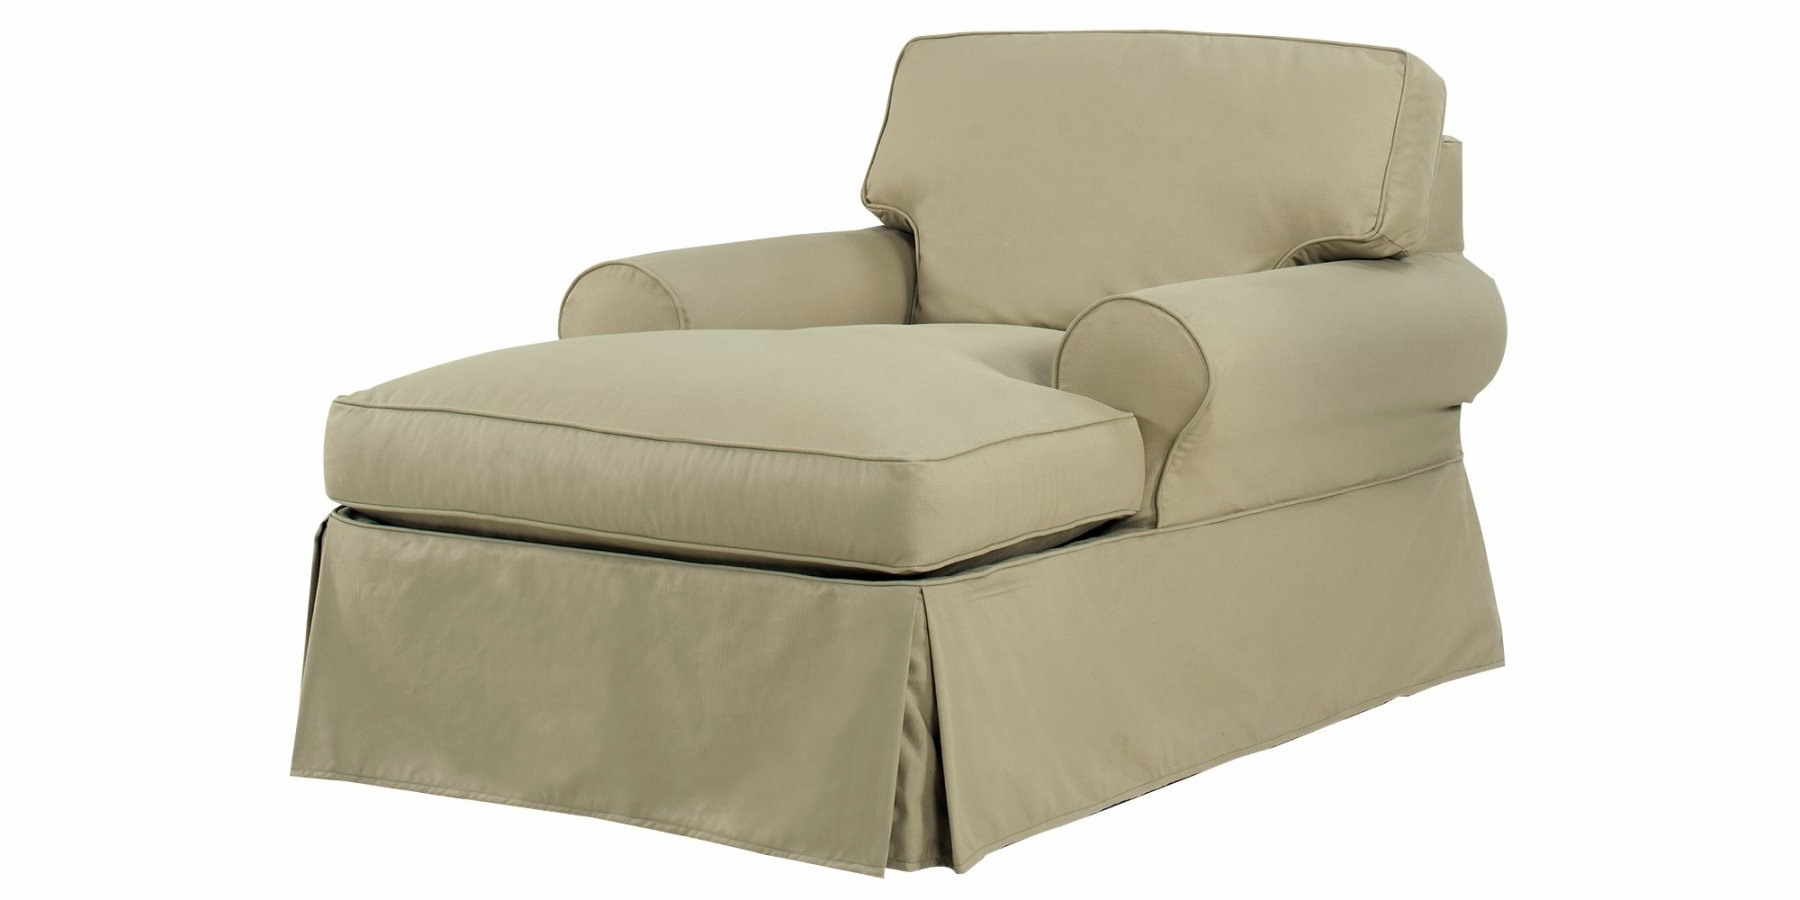 Chaise Lounge Chairs For Two For Fashionable Chaise Lounge Chairs Two Arms • Lounge Chairs Ideas (View 12 of 15)